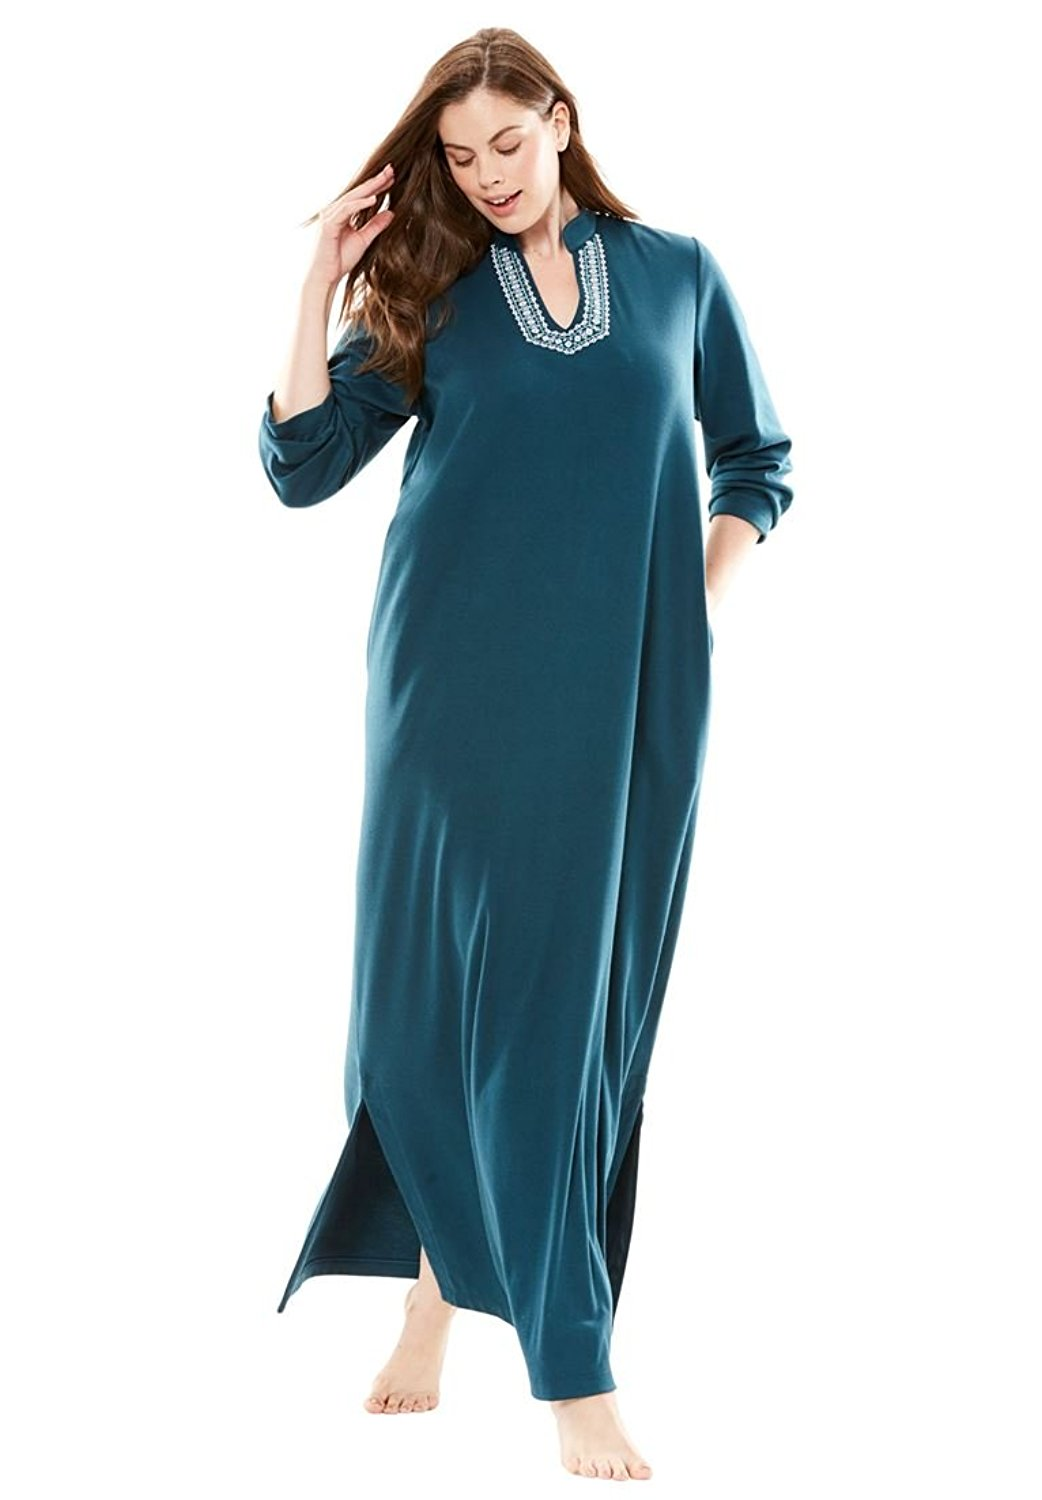 83f309d7fc1c3 Buy Only Necessities Womens Plus Size Long Embroidered Lounger in ...